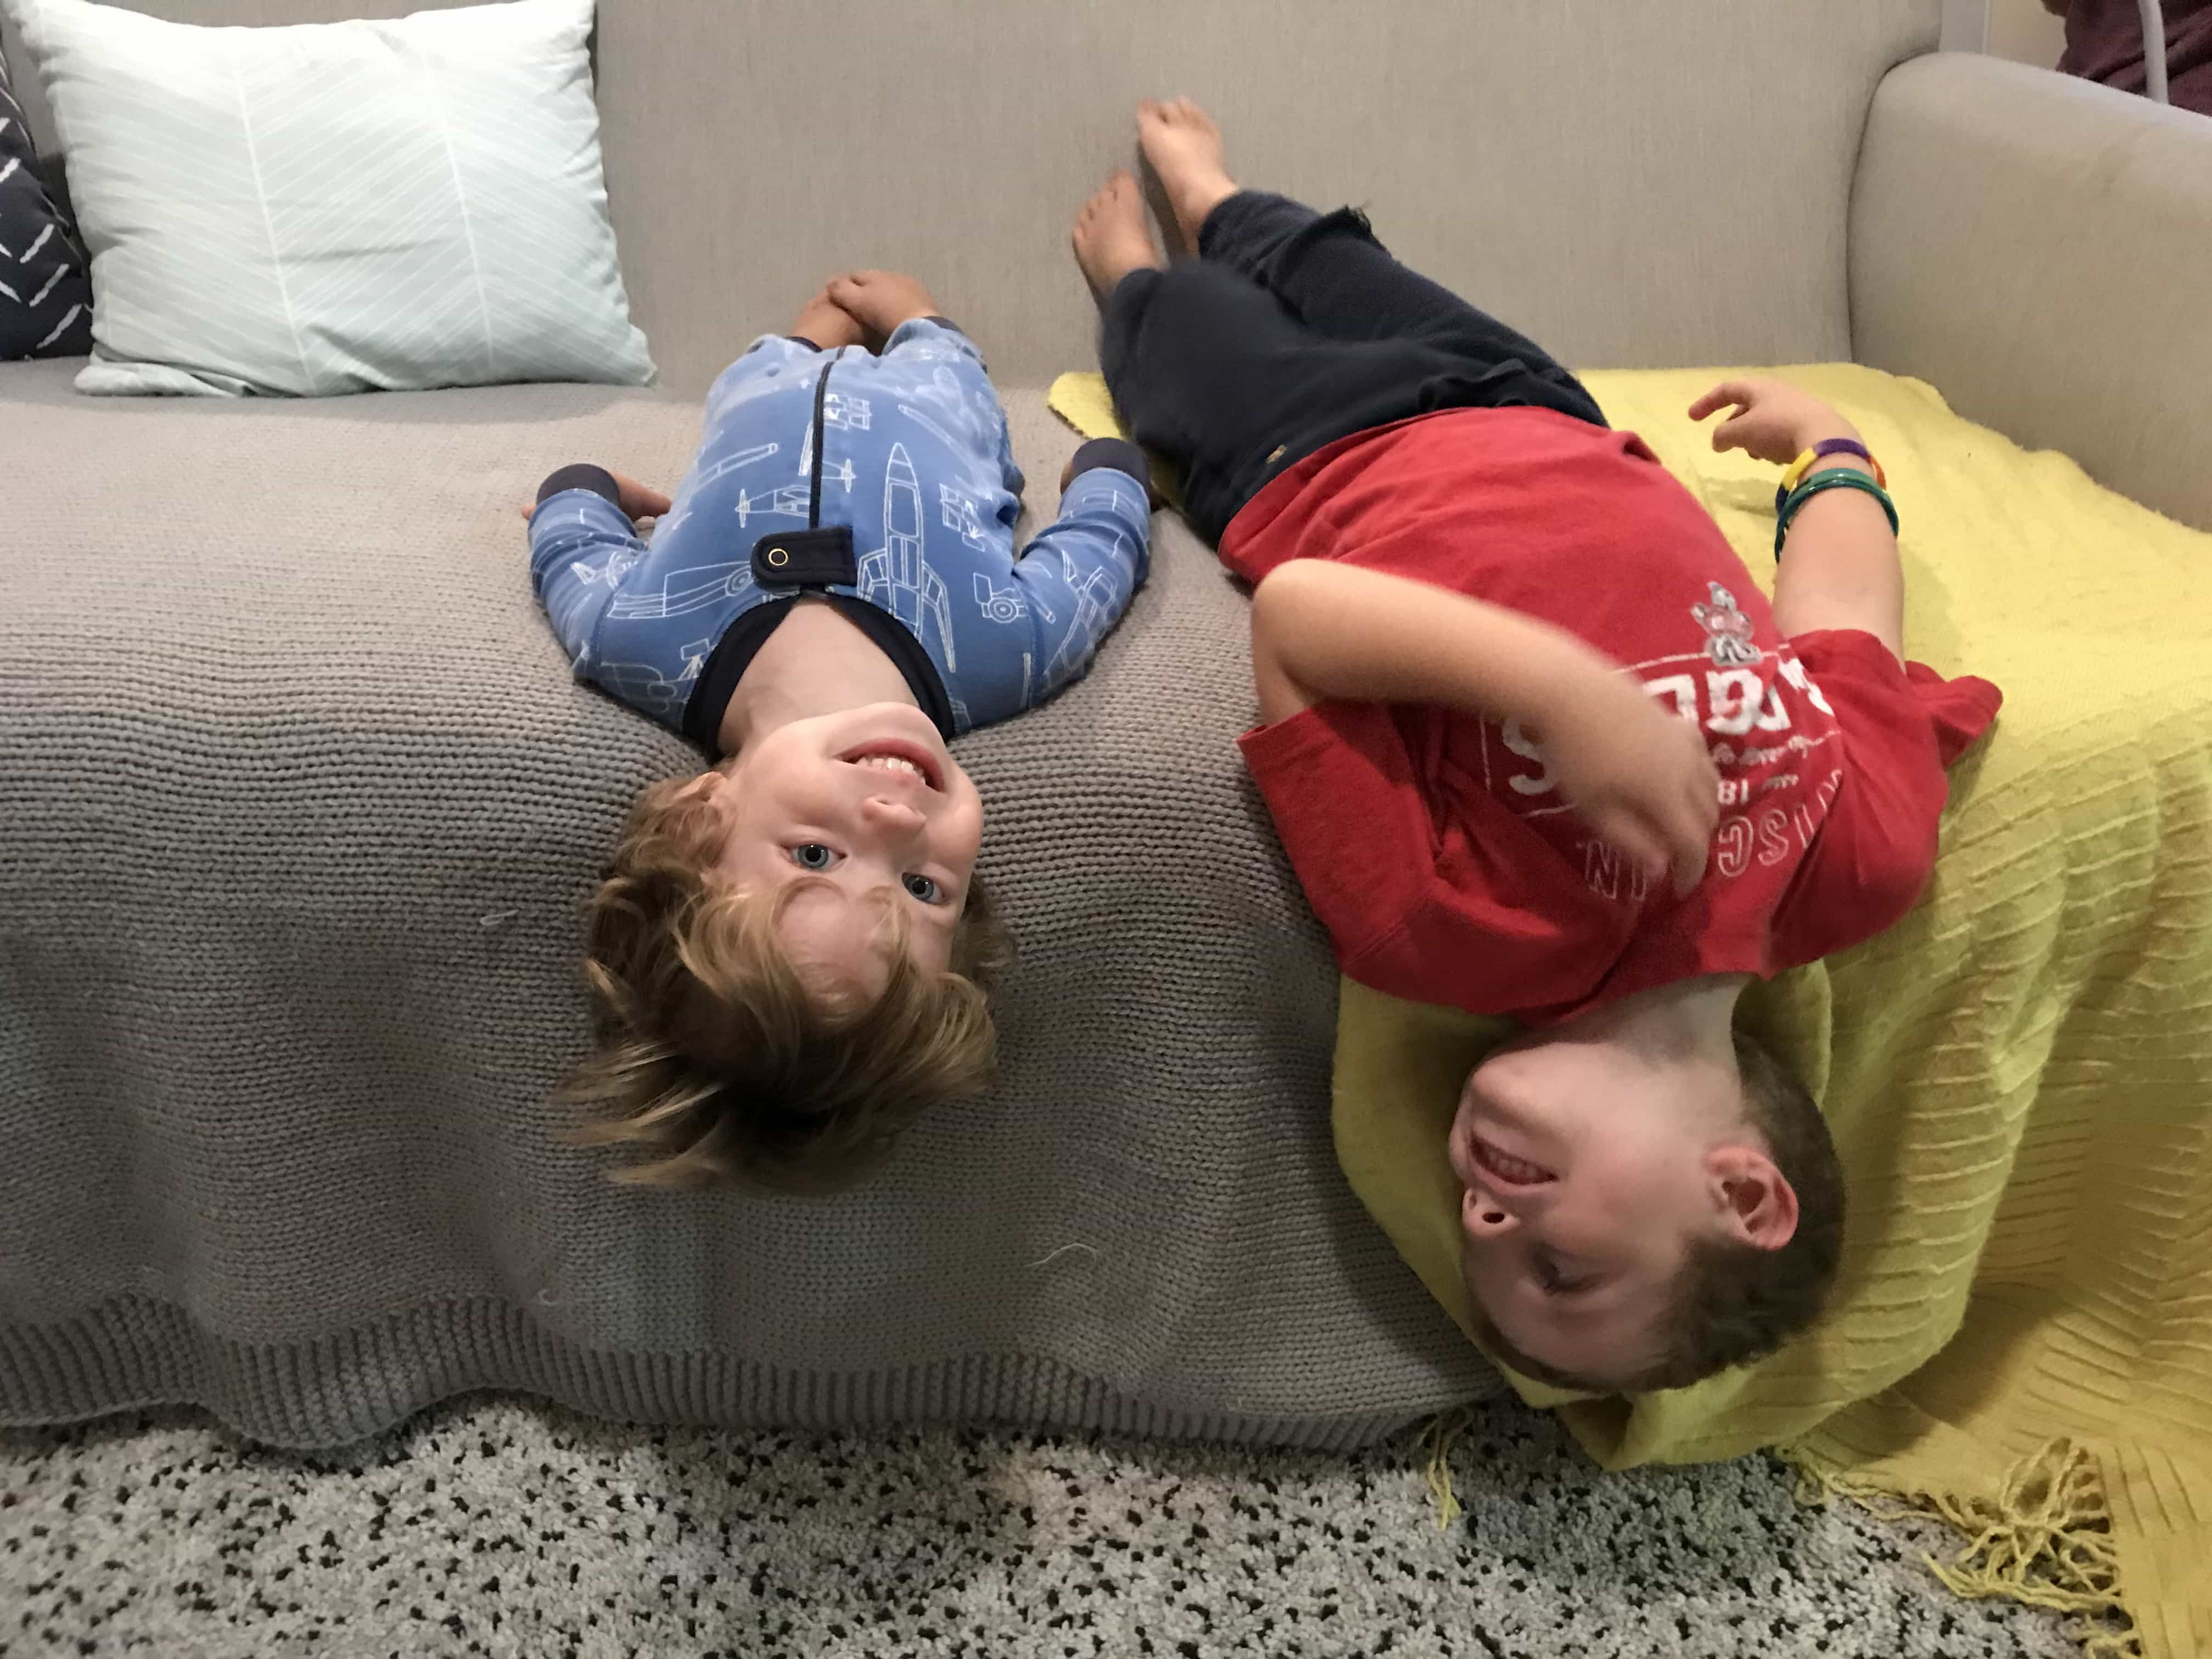 Blake and Eddie upside down on the couch